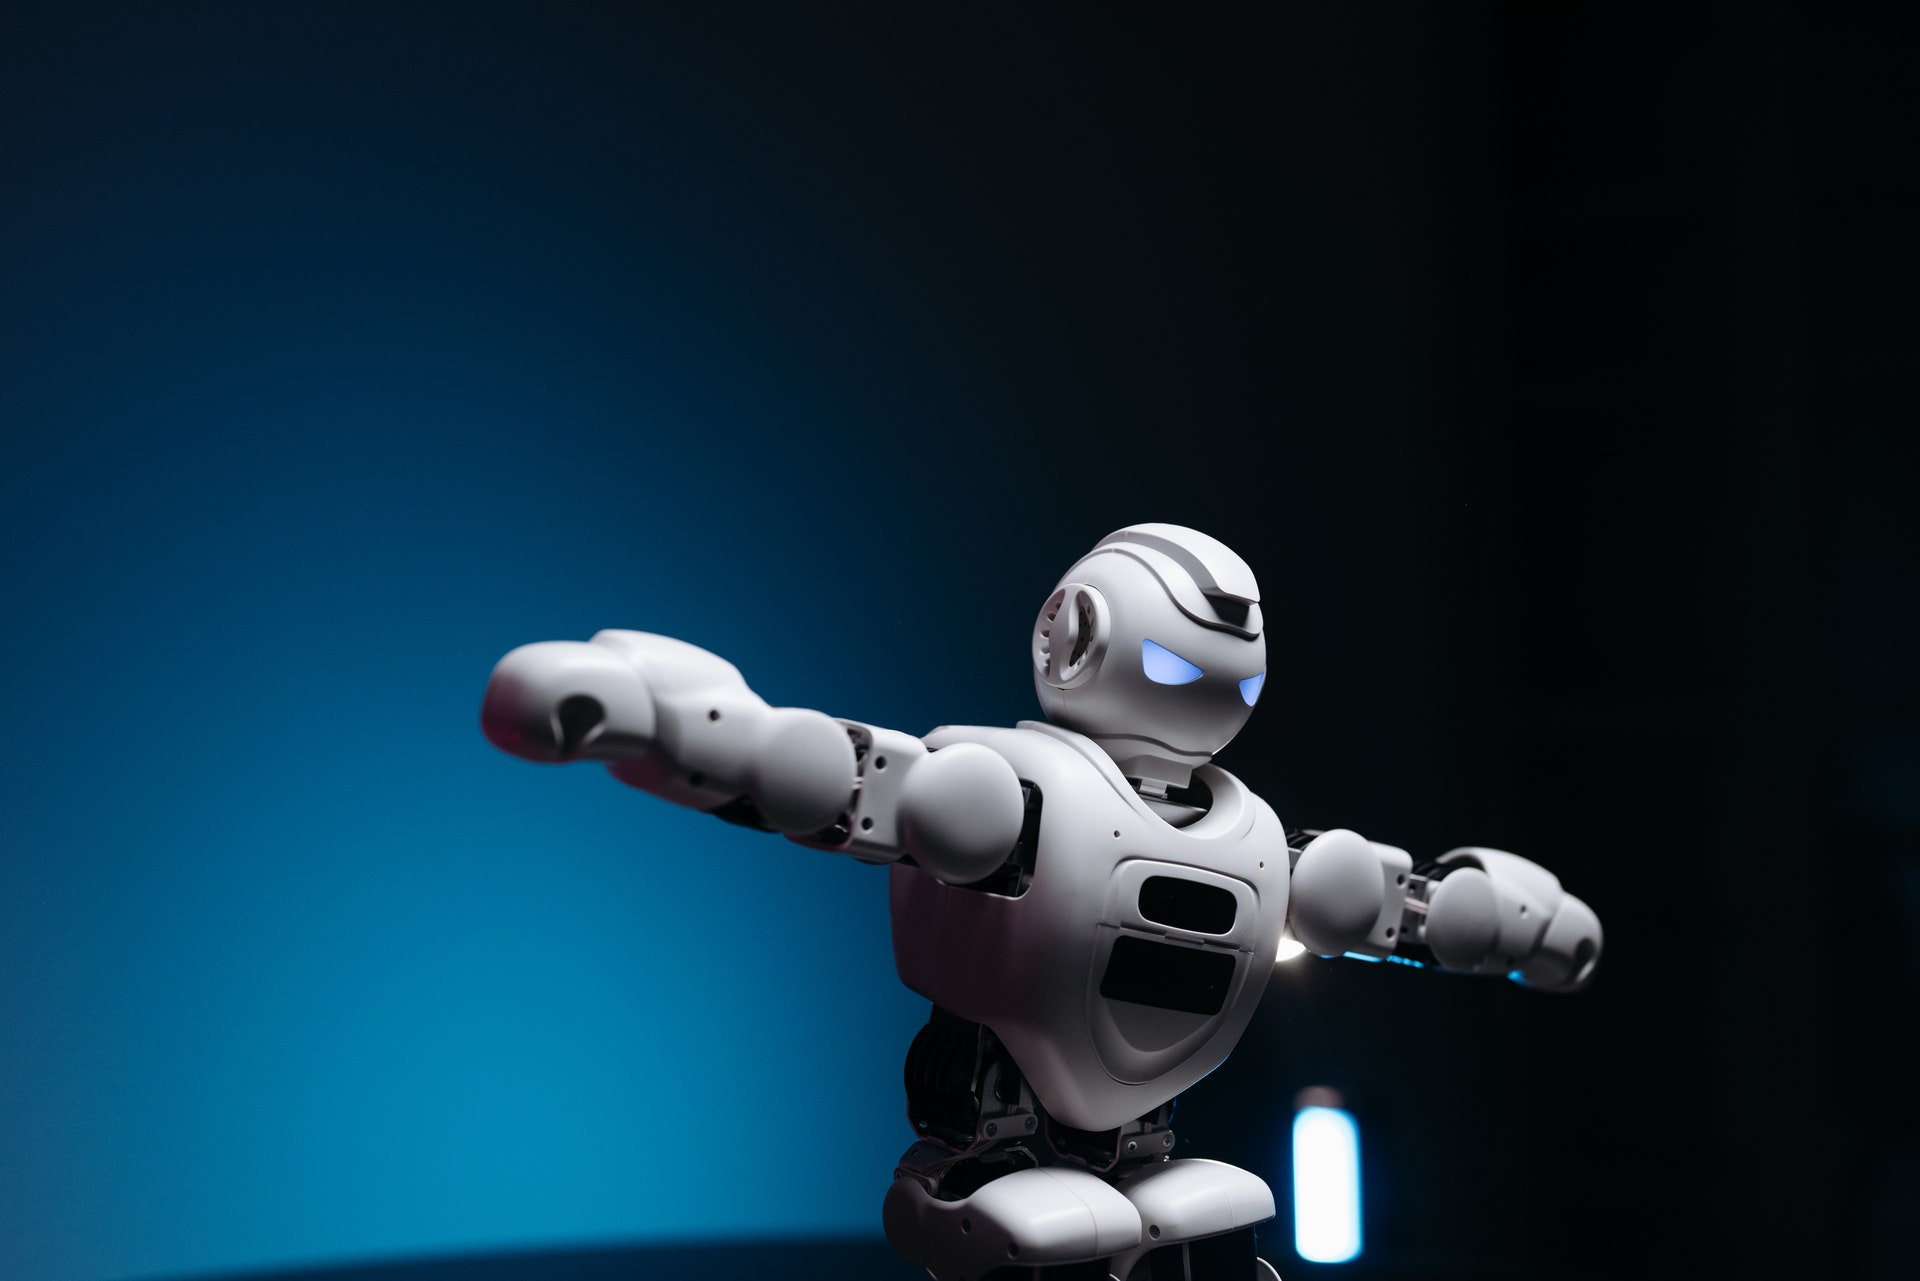 The importance of Ethical AI